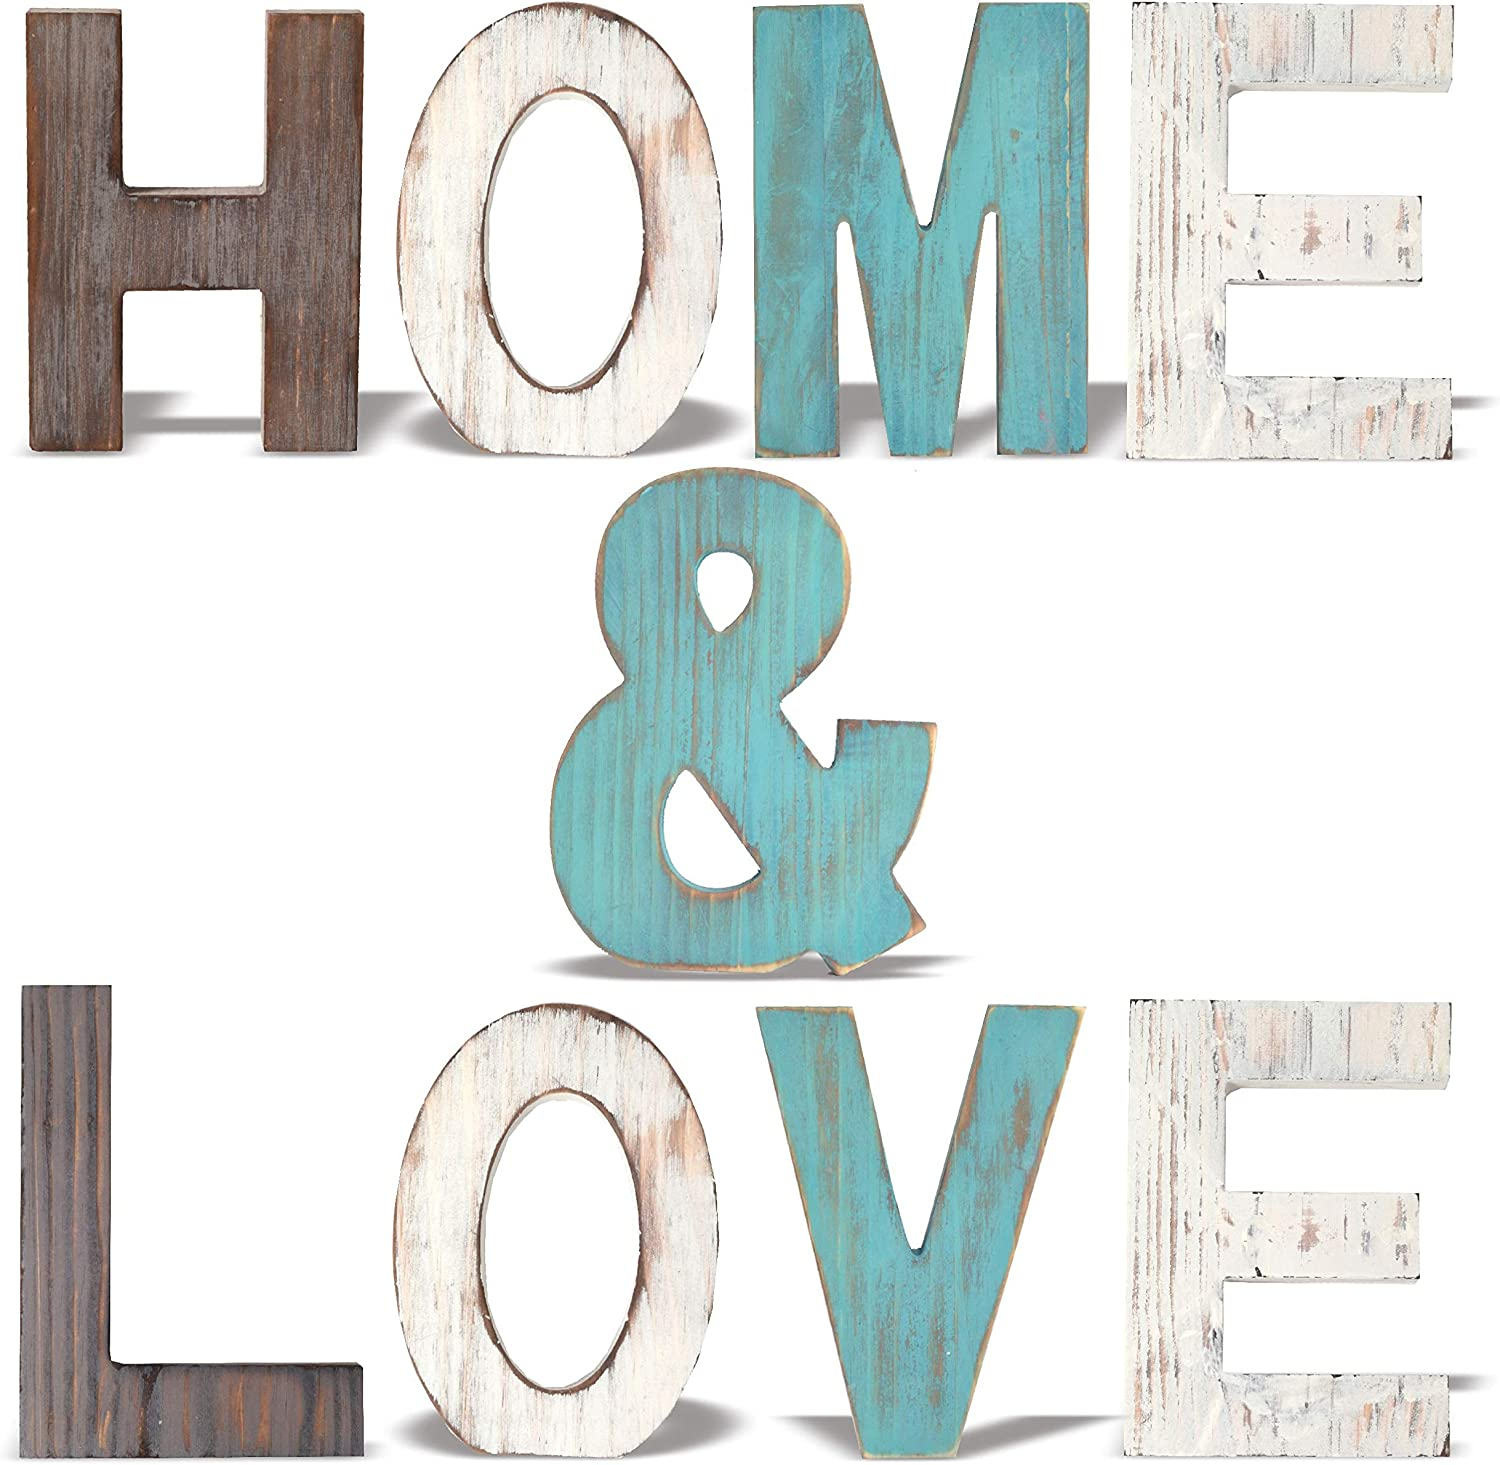 Rustic Wood Home & Love Signs Home Décor |Freestanding Wooden Letters Cutouts for Home Décor|Multi-Color Wooden Signs |Decorative Word Signs|Multicolor Table Decor Centerpiece| (home+love) (Green)